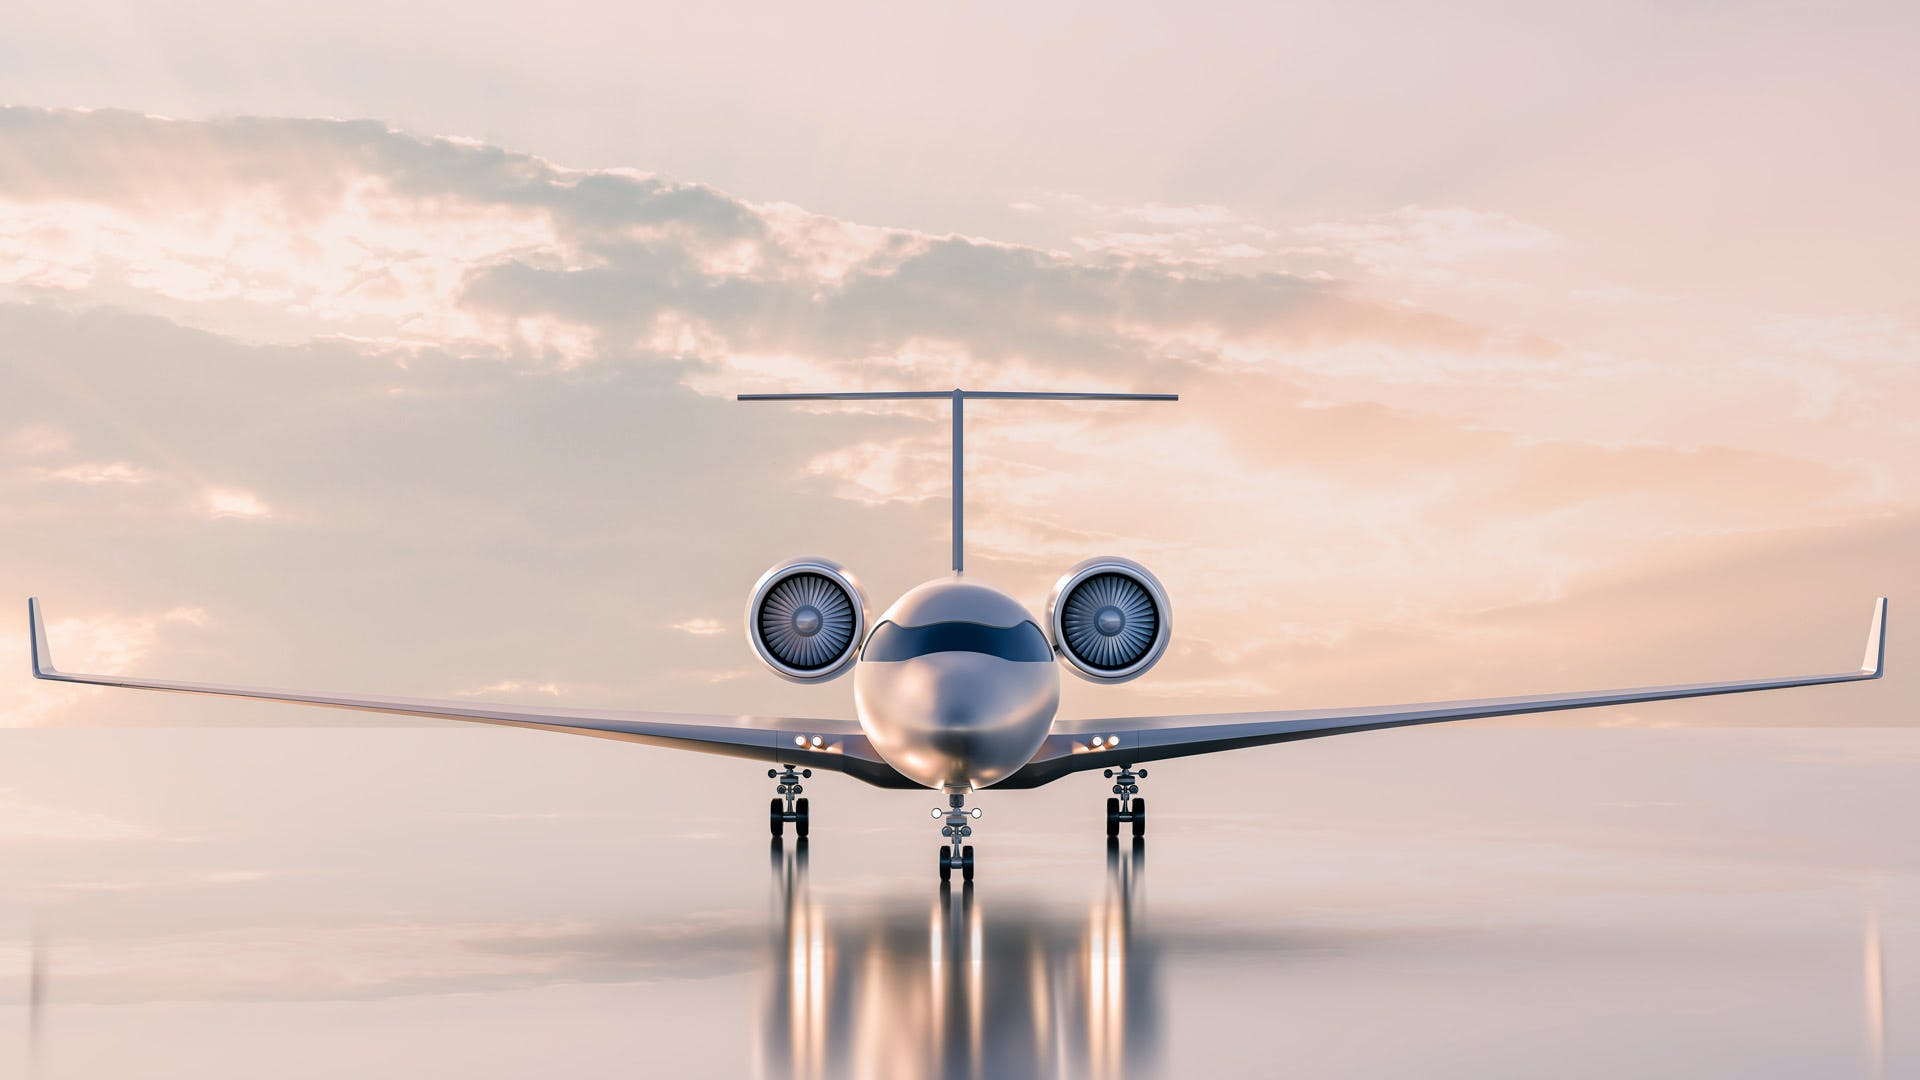 Choose a private charter to get your business associates to their destinations quickly and safely.